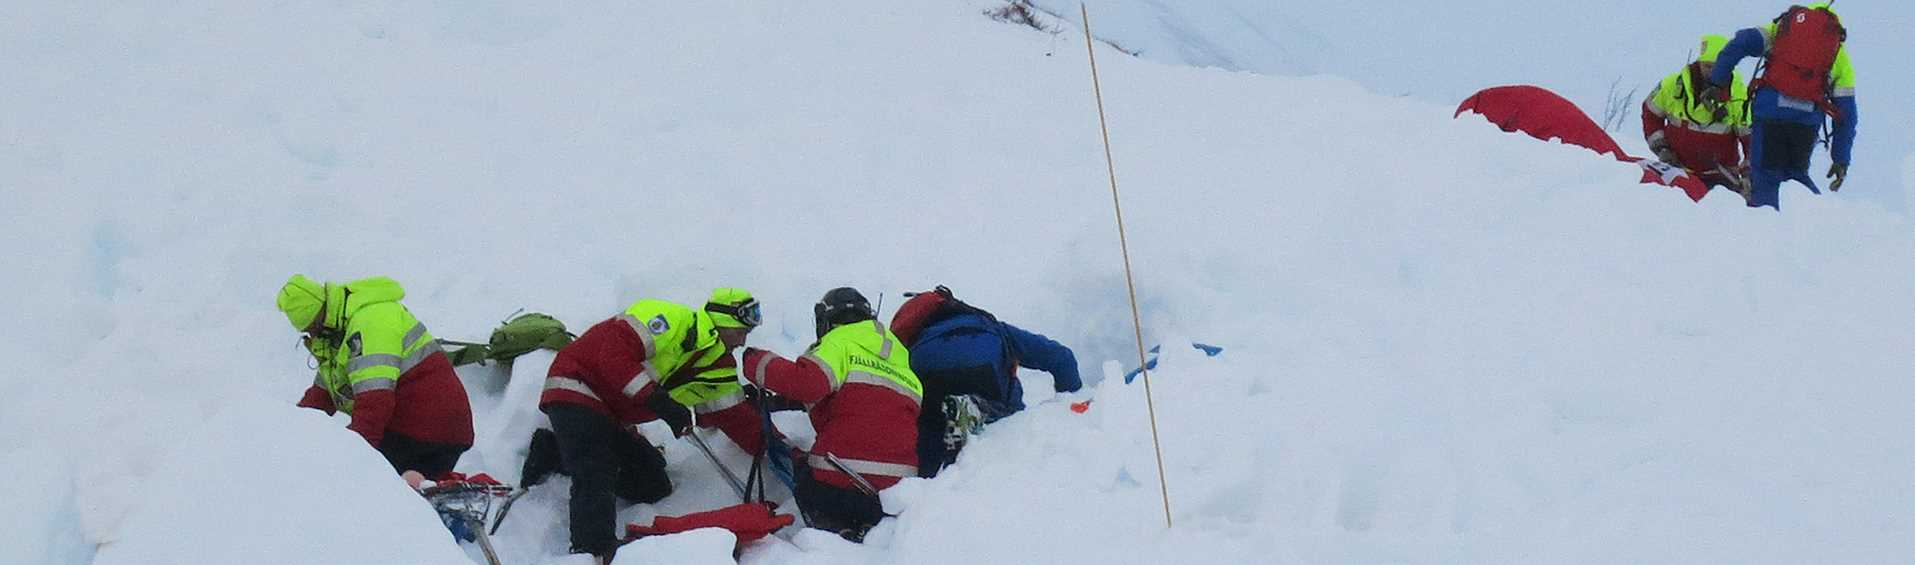 Mountain rescue team serching in the snow after an avalanche